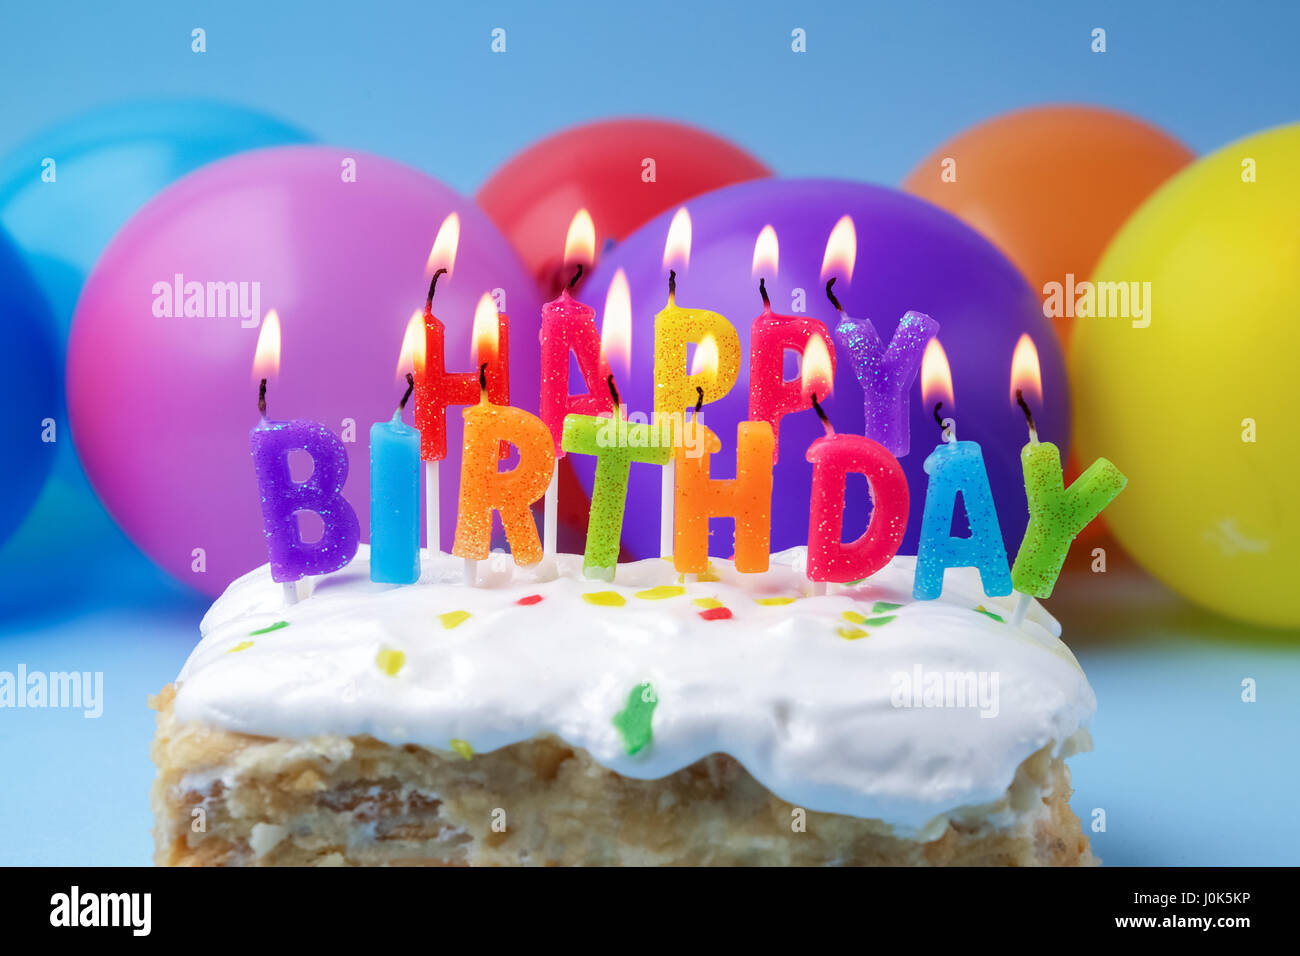 Cake With Birthday Greetings From Burning Candles On A Colored Stock